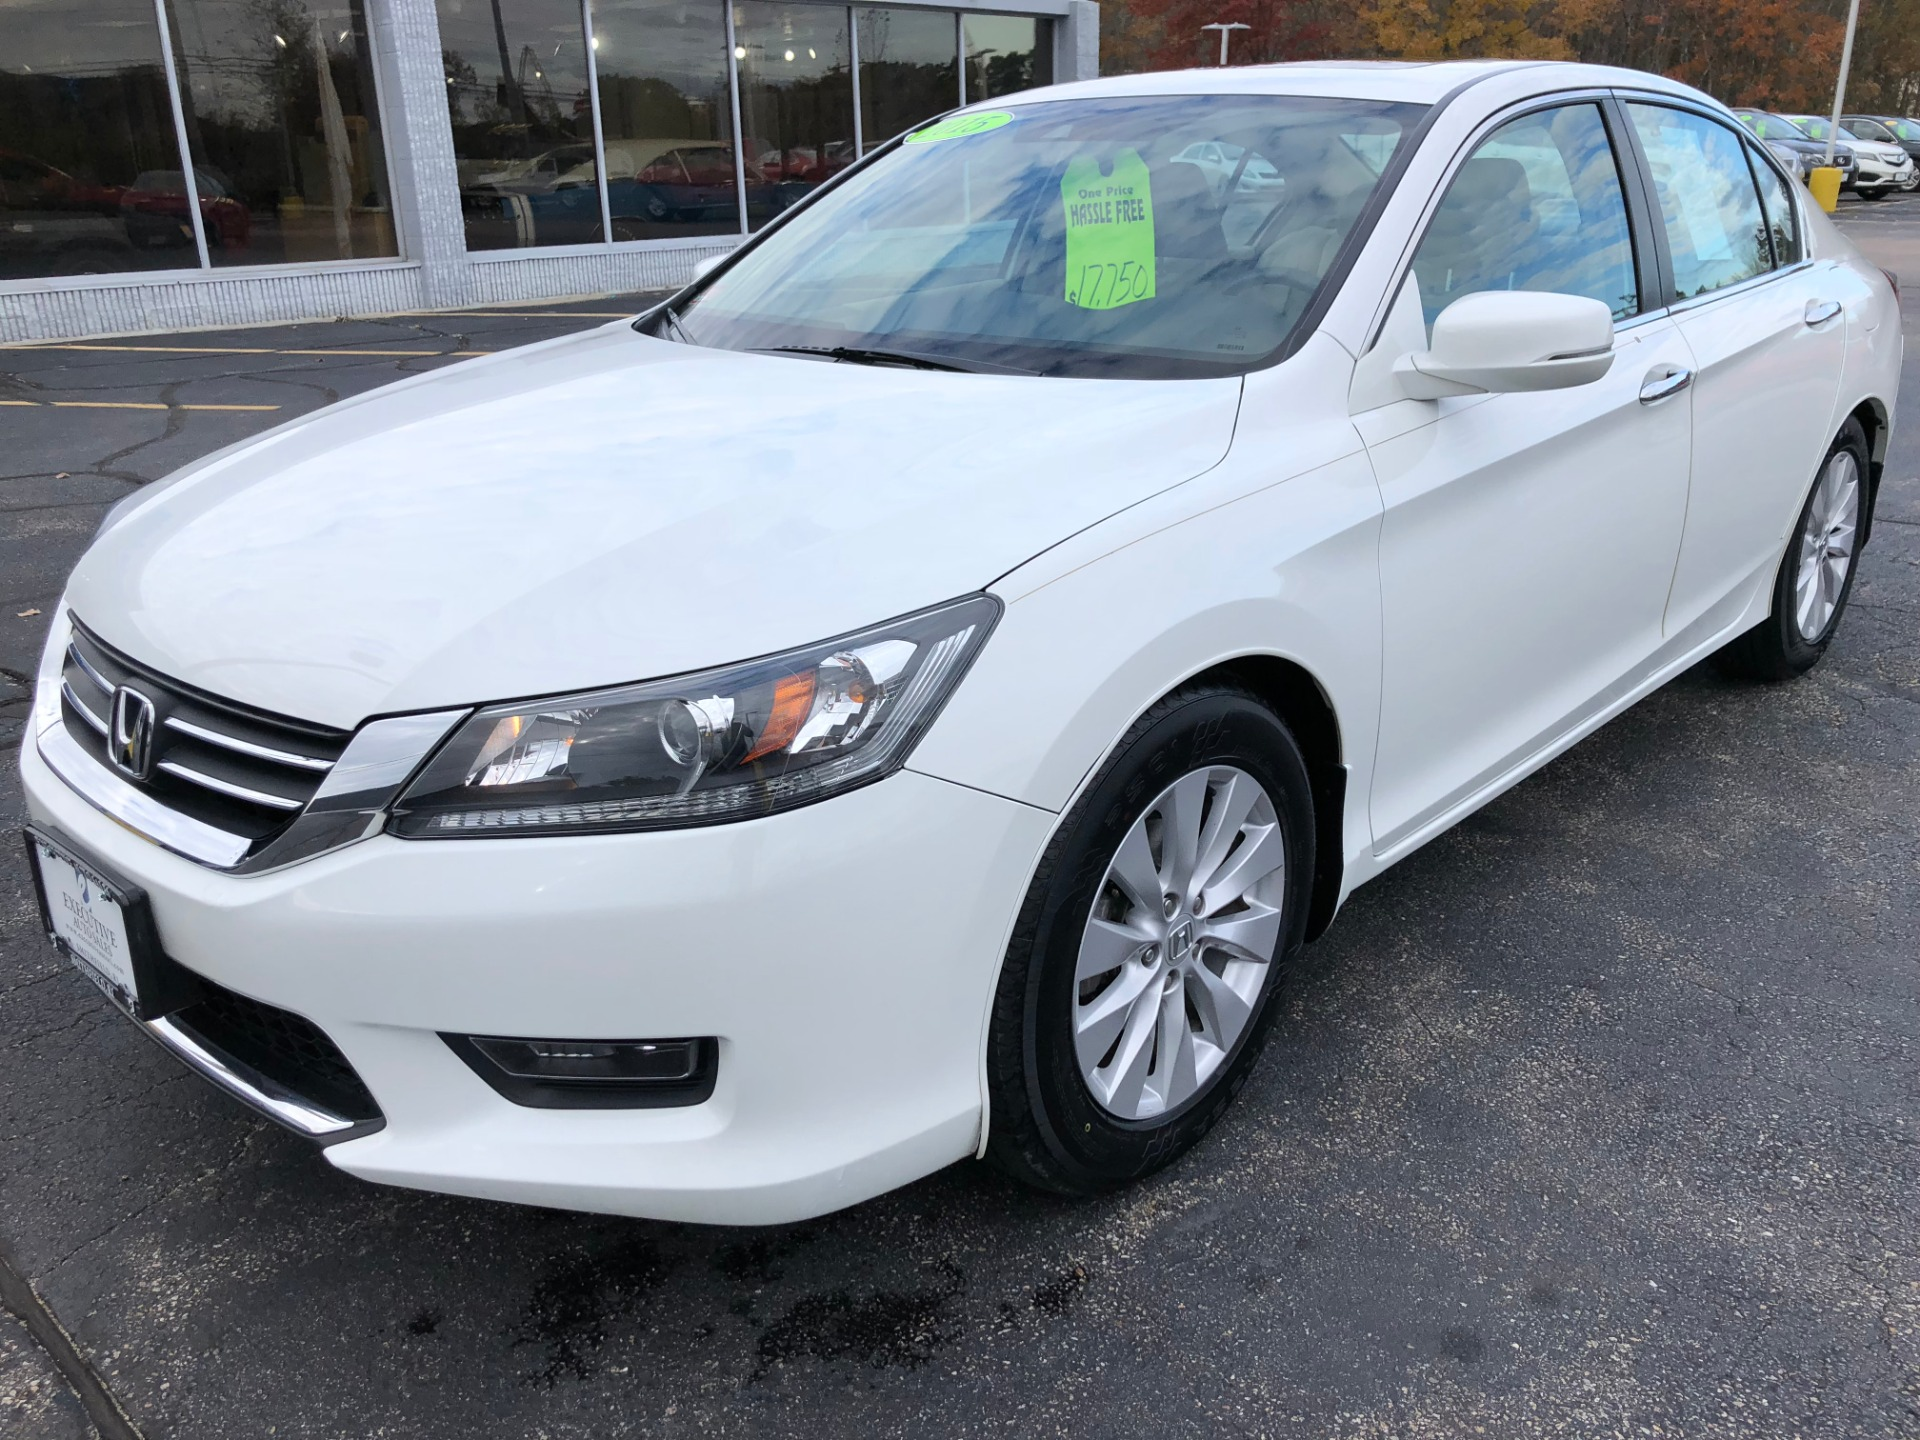 honda accord ex-l 2015 manual